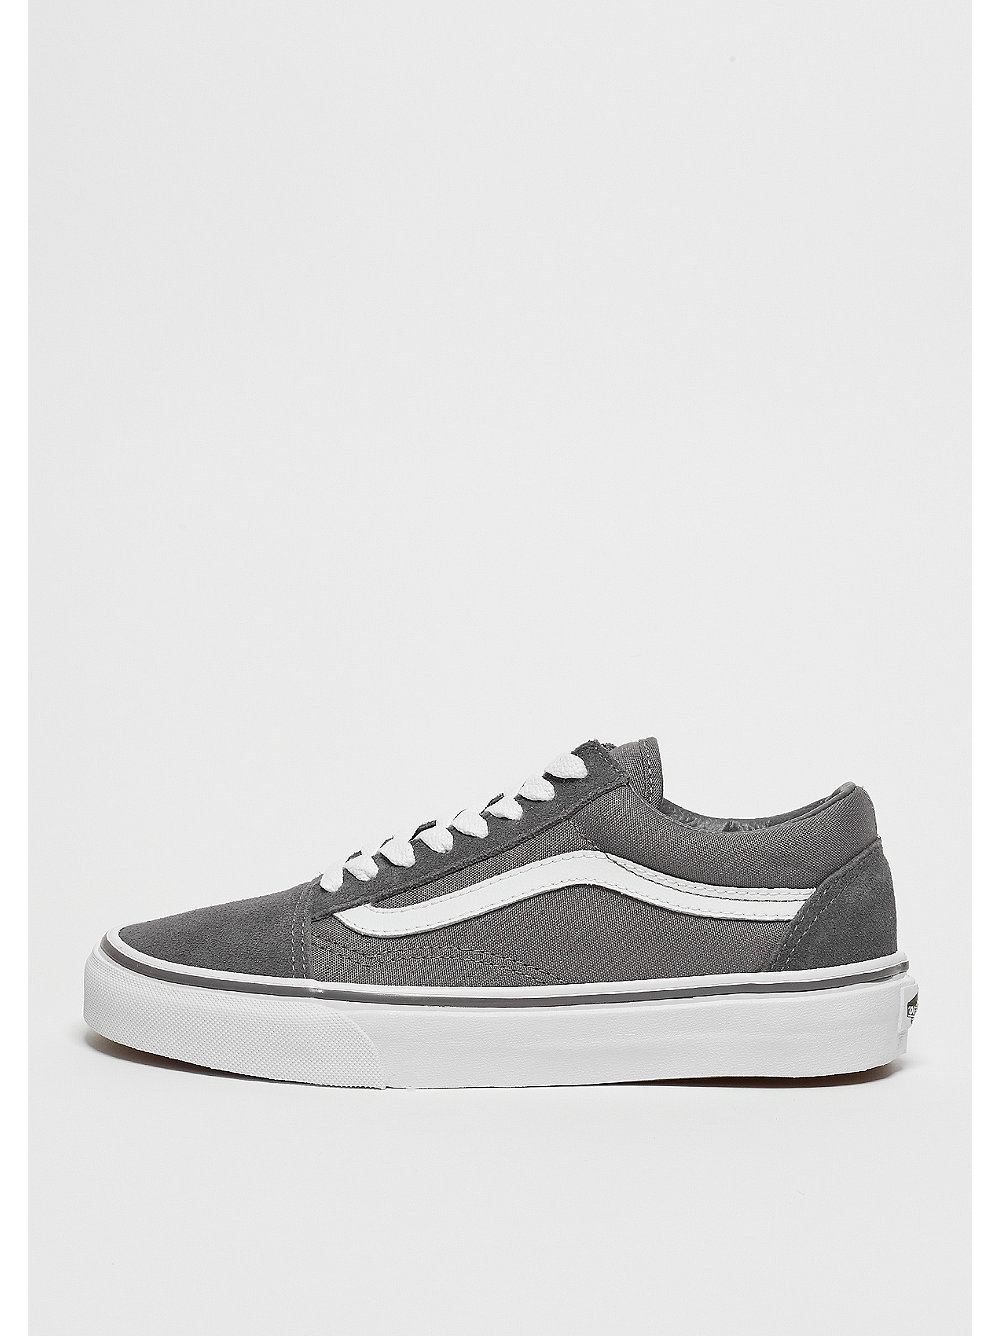 grau vans old skool